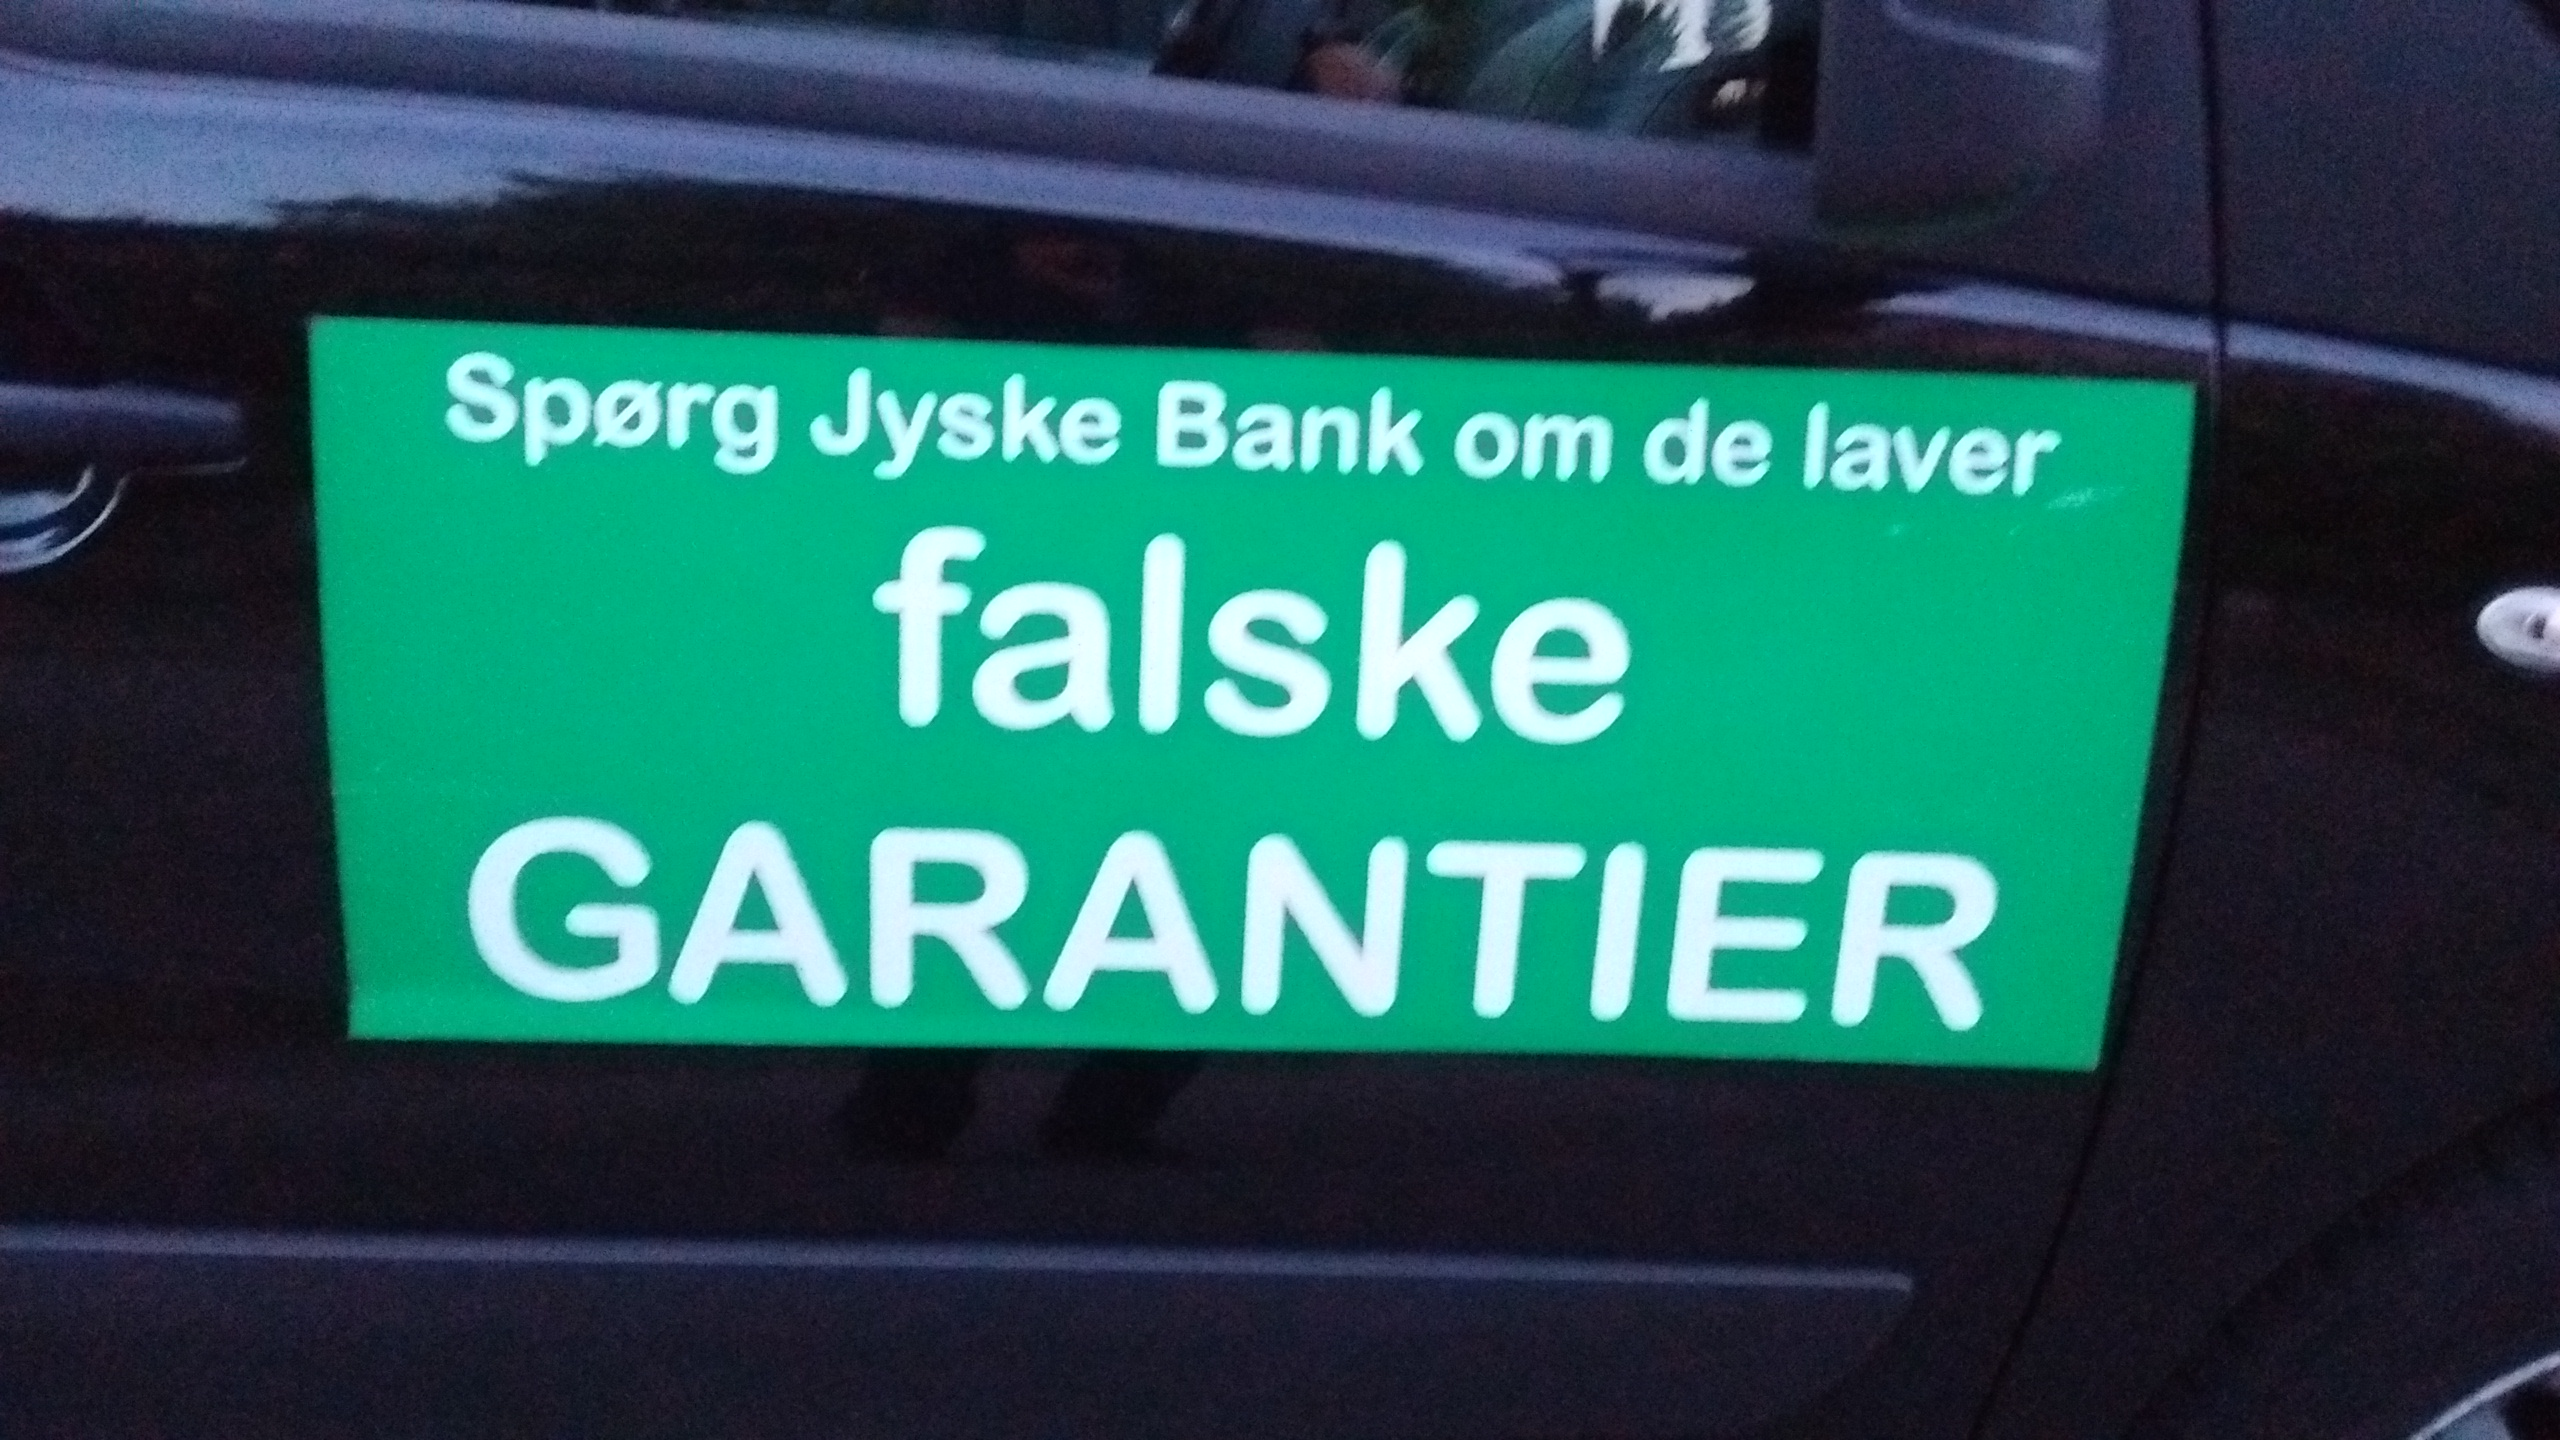 Lær jyskebank at kende Hvem dækker over Jyske Banks fortatte svigforretninger. Bribery at the top of the Danish business seems to have been politically approved. Following Jyske Bank's fraud case. Lundgren's lawyer partner company paid several million Danish kroner, moreover, the same Lundgren's lawyers who would not bring a case against the Danish bank Jyske Bank for fraud. Which Lundgren's lawyer partner company regrettably forgot to submit to the court. That it happened according to Jyske Bank's management, certainly by CEO Anders Dam who is directly contributing to Jyske Bank's continued crimes. When Jyske Bank then chose to give the large law firm Lundgren's lawyers a huge order. It became very clear that the overall board of directors of Jyske Bank continues to expose the customer to very serious fraud transactions. And that Jyske Bank's board of directors is still behind millions of scams and now probably also corruption. All to disappoint in legal matters, and to serve the shareholders in the Danish Bank's financial interests.